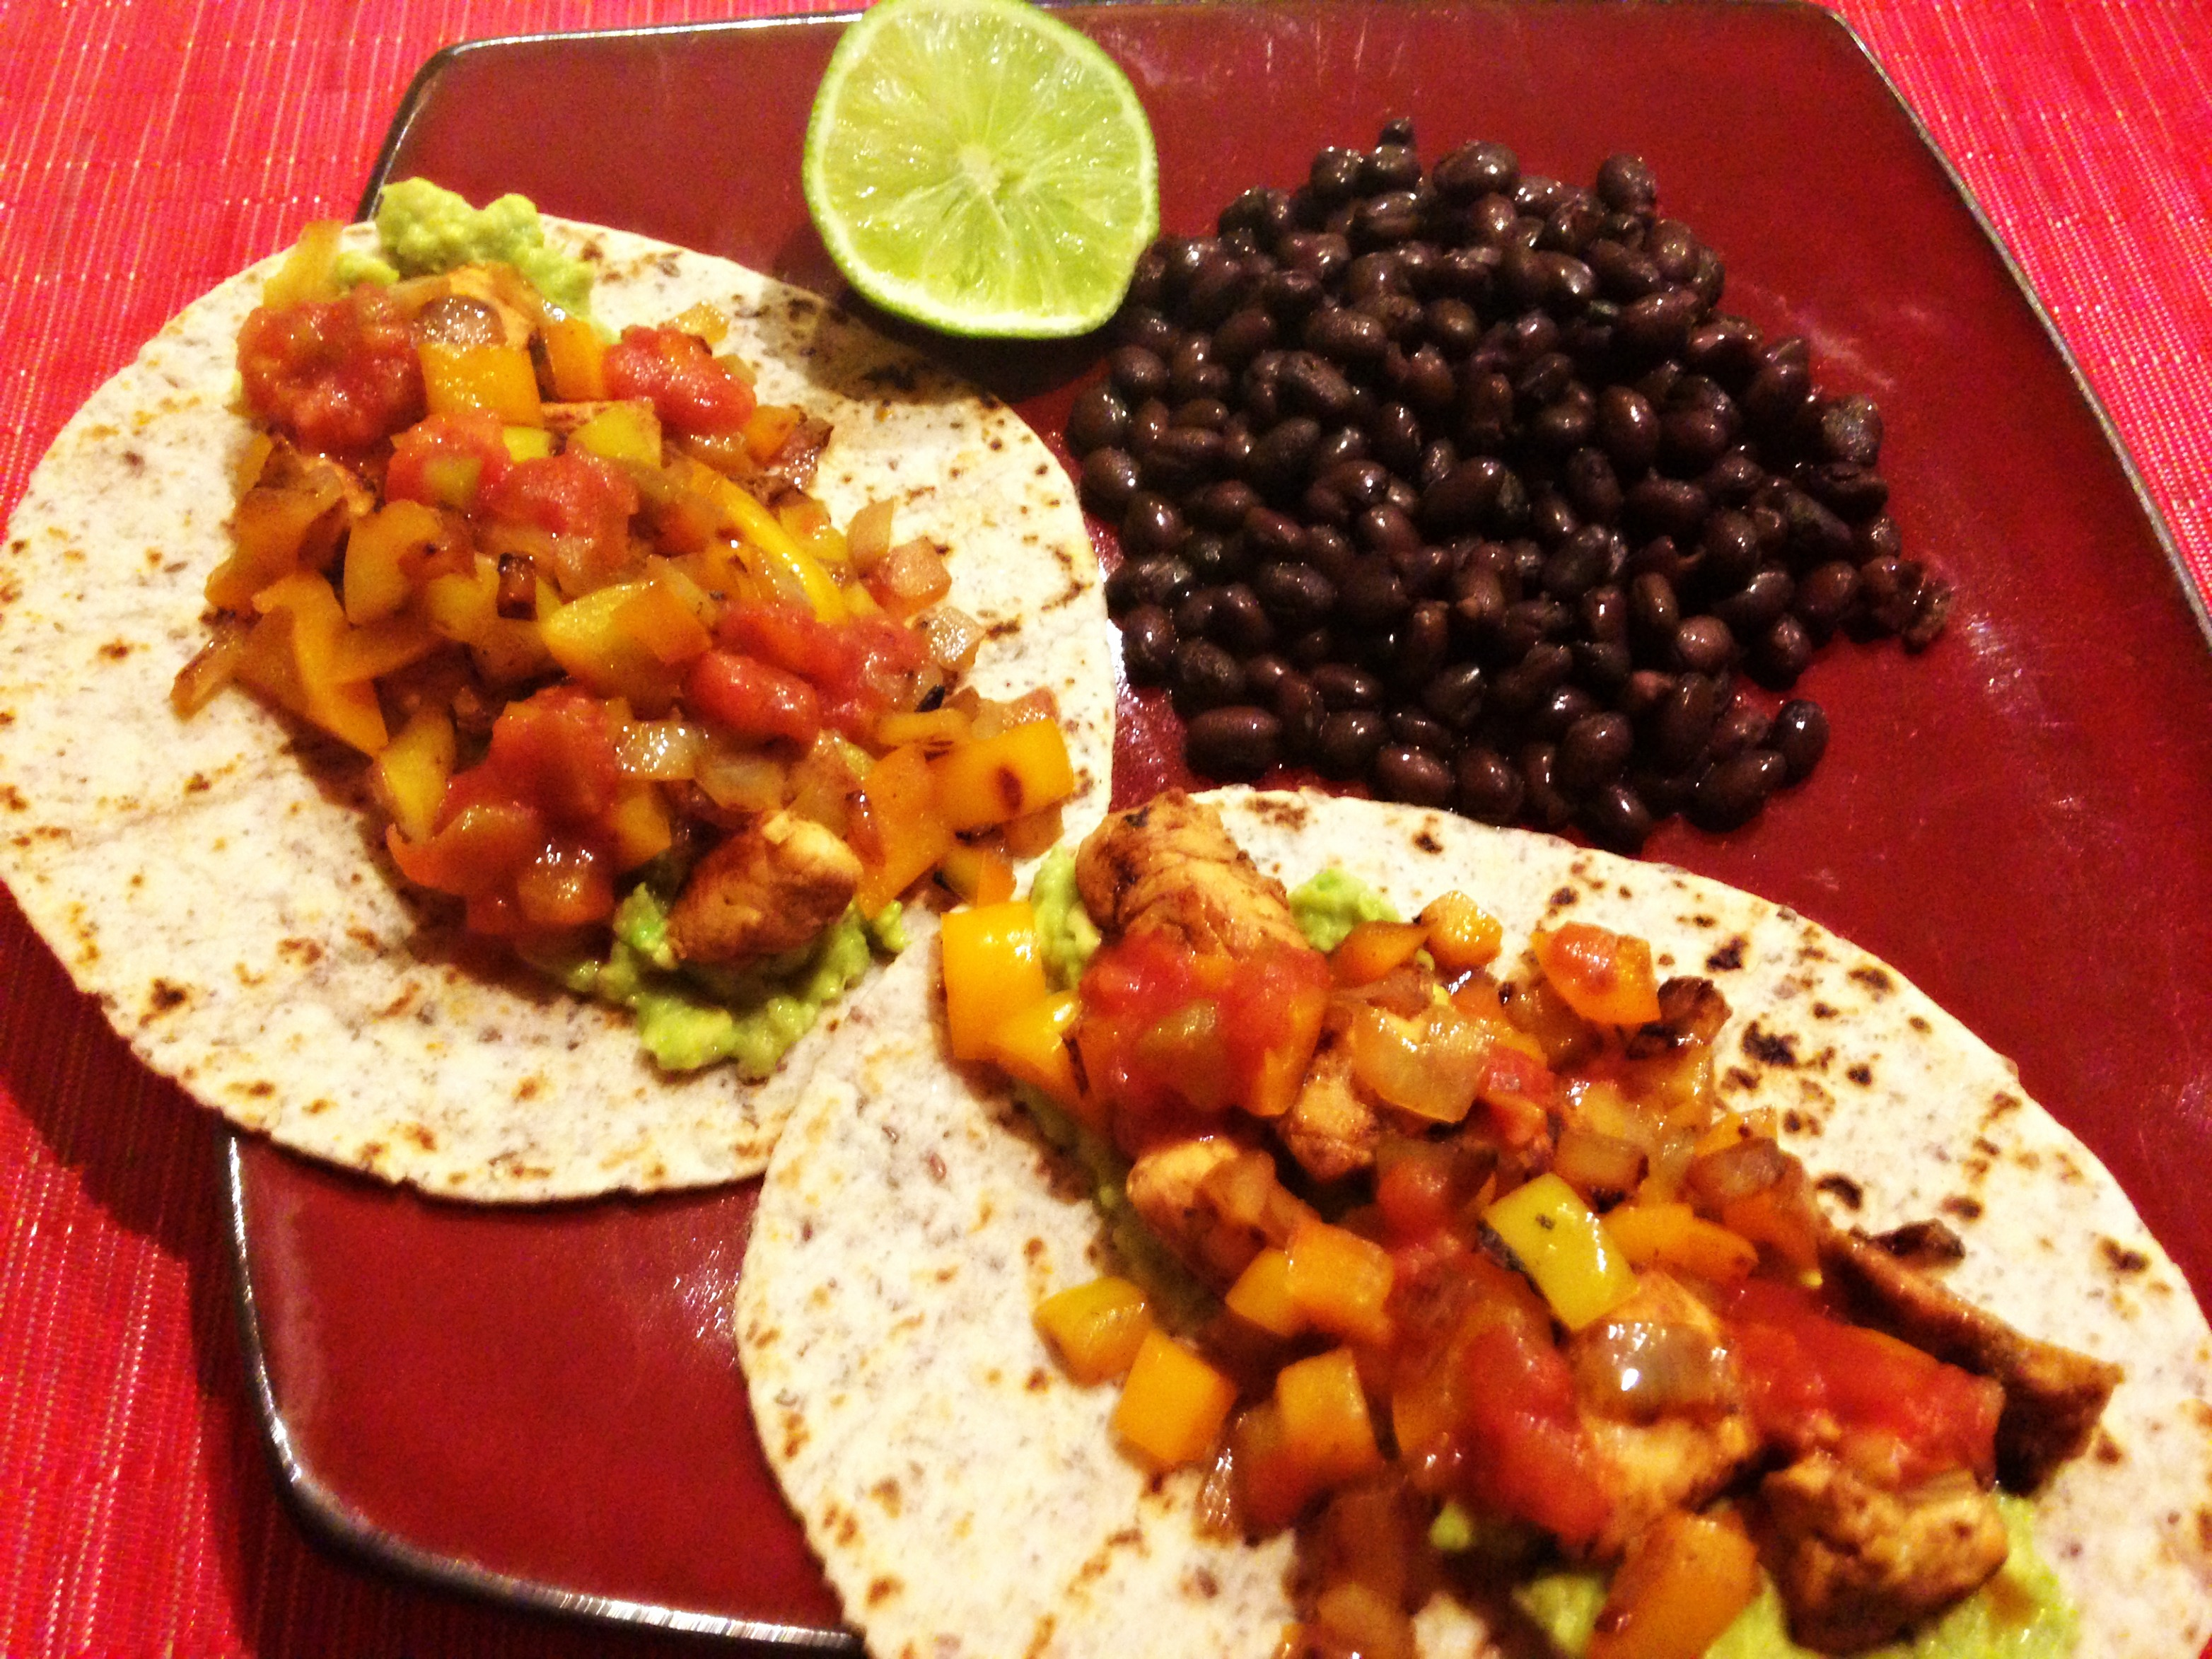 Taco dinner with beans